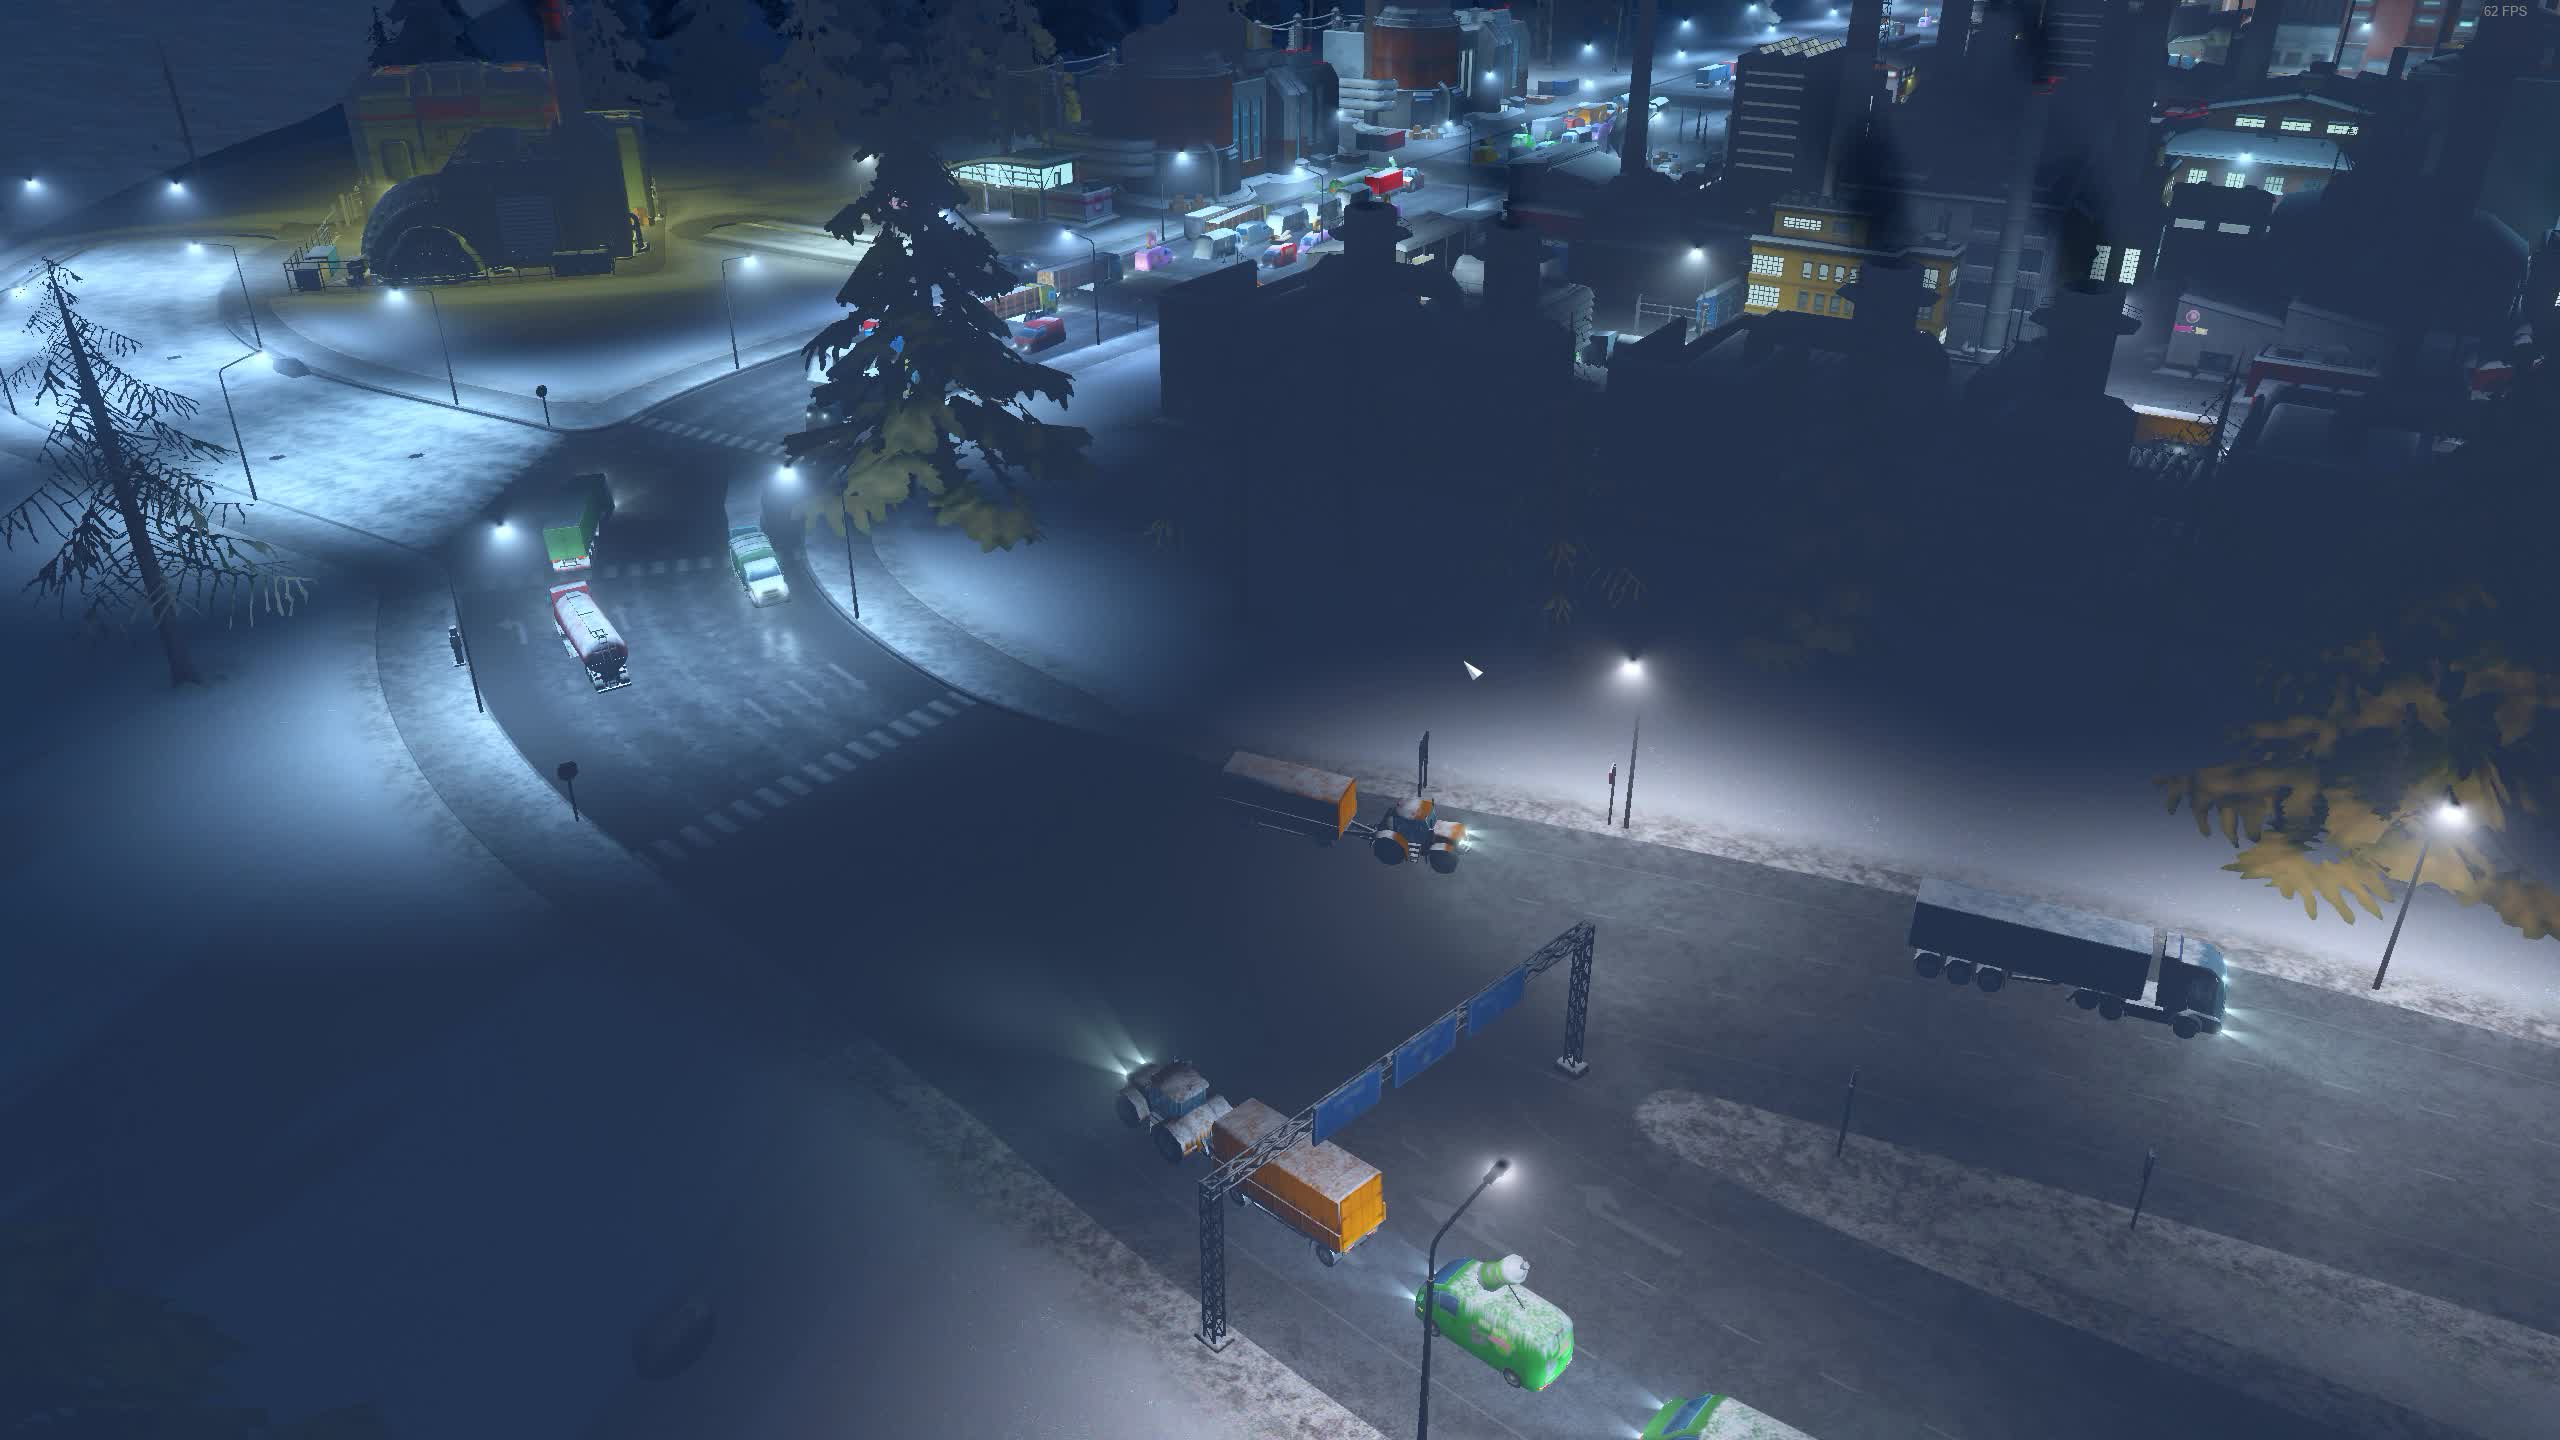 citiesskylines, vlc-record-2018-10-08-18h16m46s-Cities Skylines 2018.10.08 - 18.16.17.237.DVR.mp4- GIFs